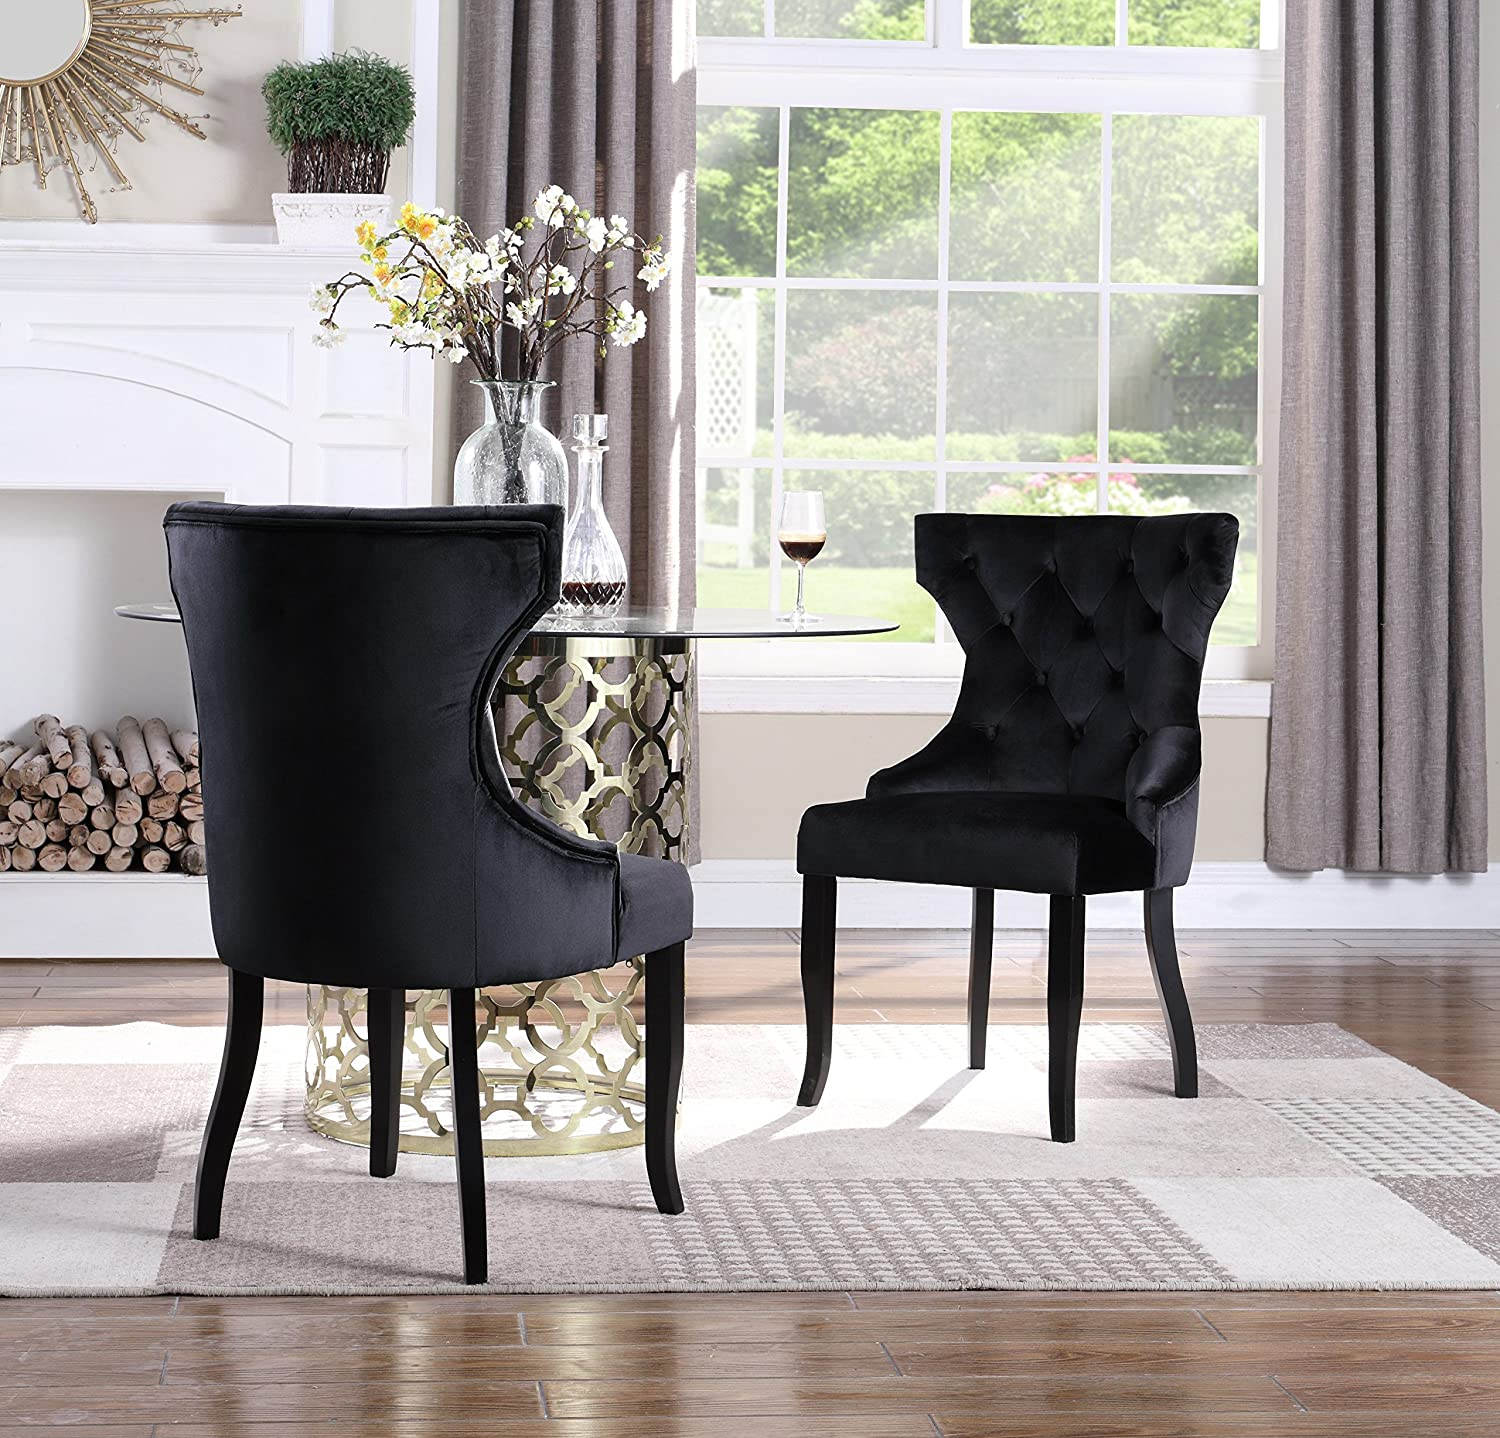 Iconic Home Naomi Wingback Dining Chair Button Tufted Velvet Upholstered Tapered Espresso Wood Legs, Modern Transitional, Black, Set of 2